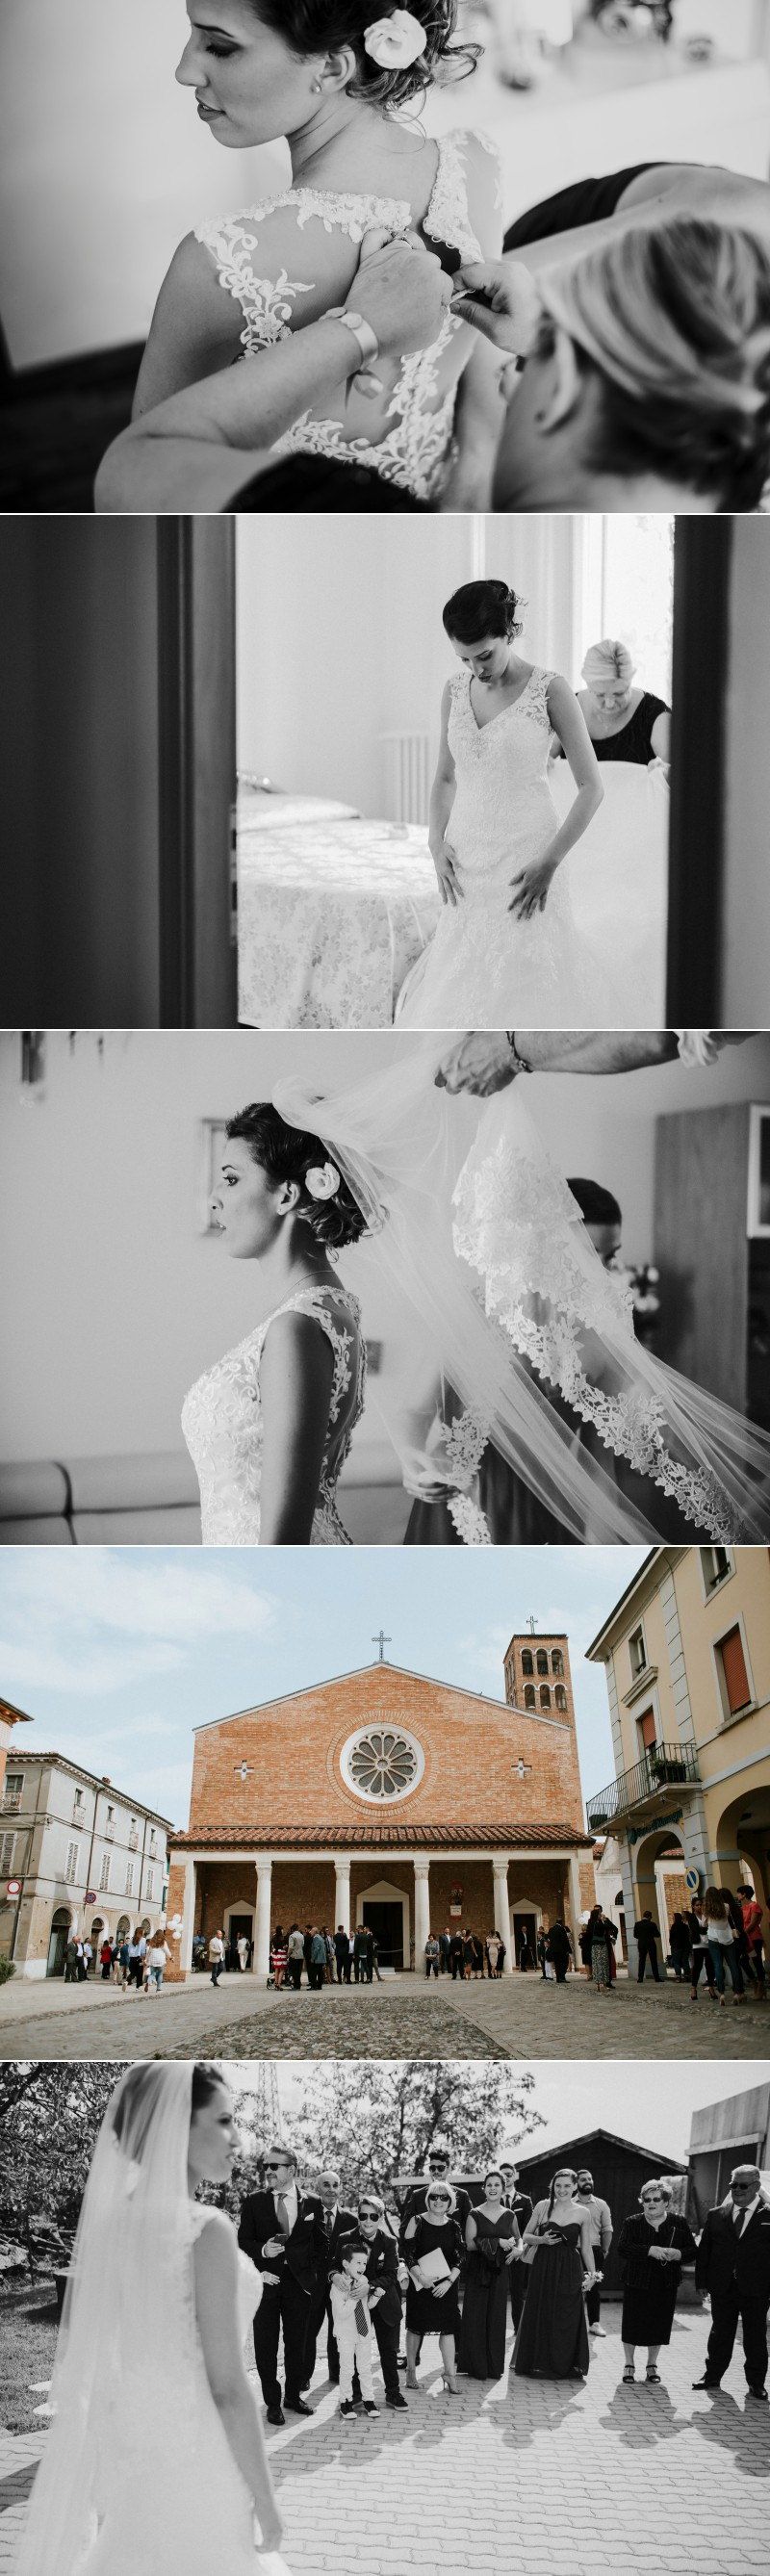 Wedding Photographer Bologna 3